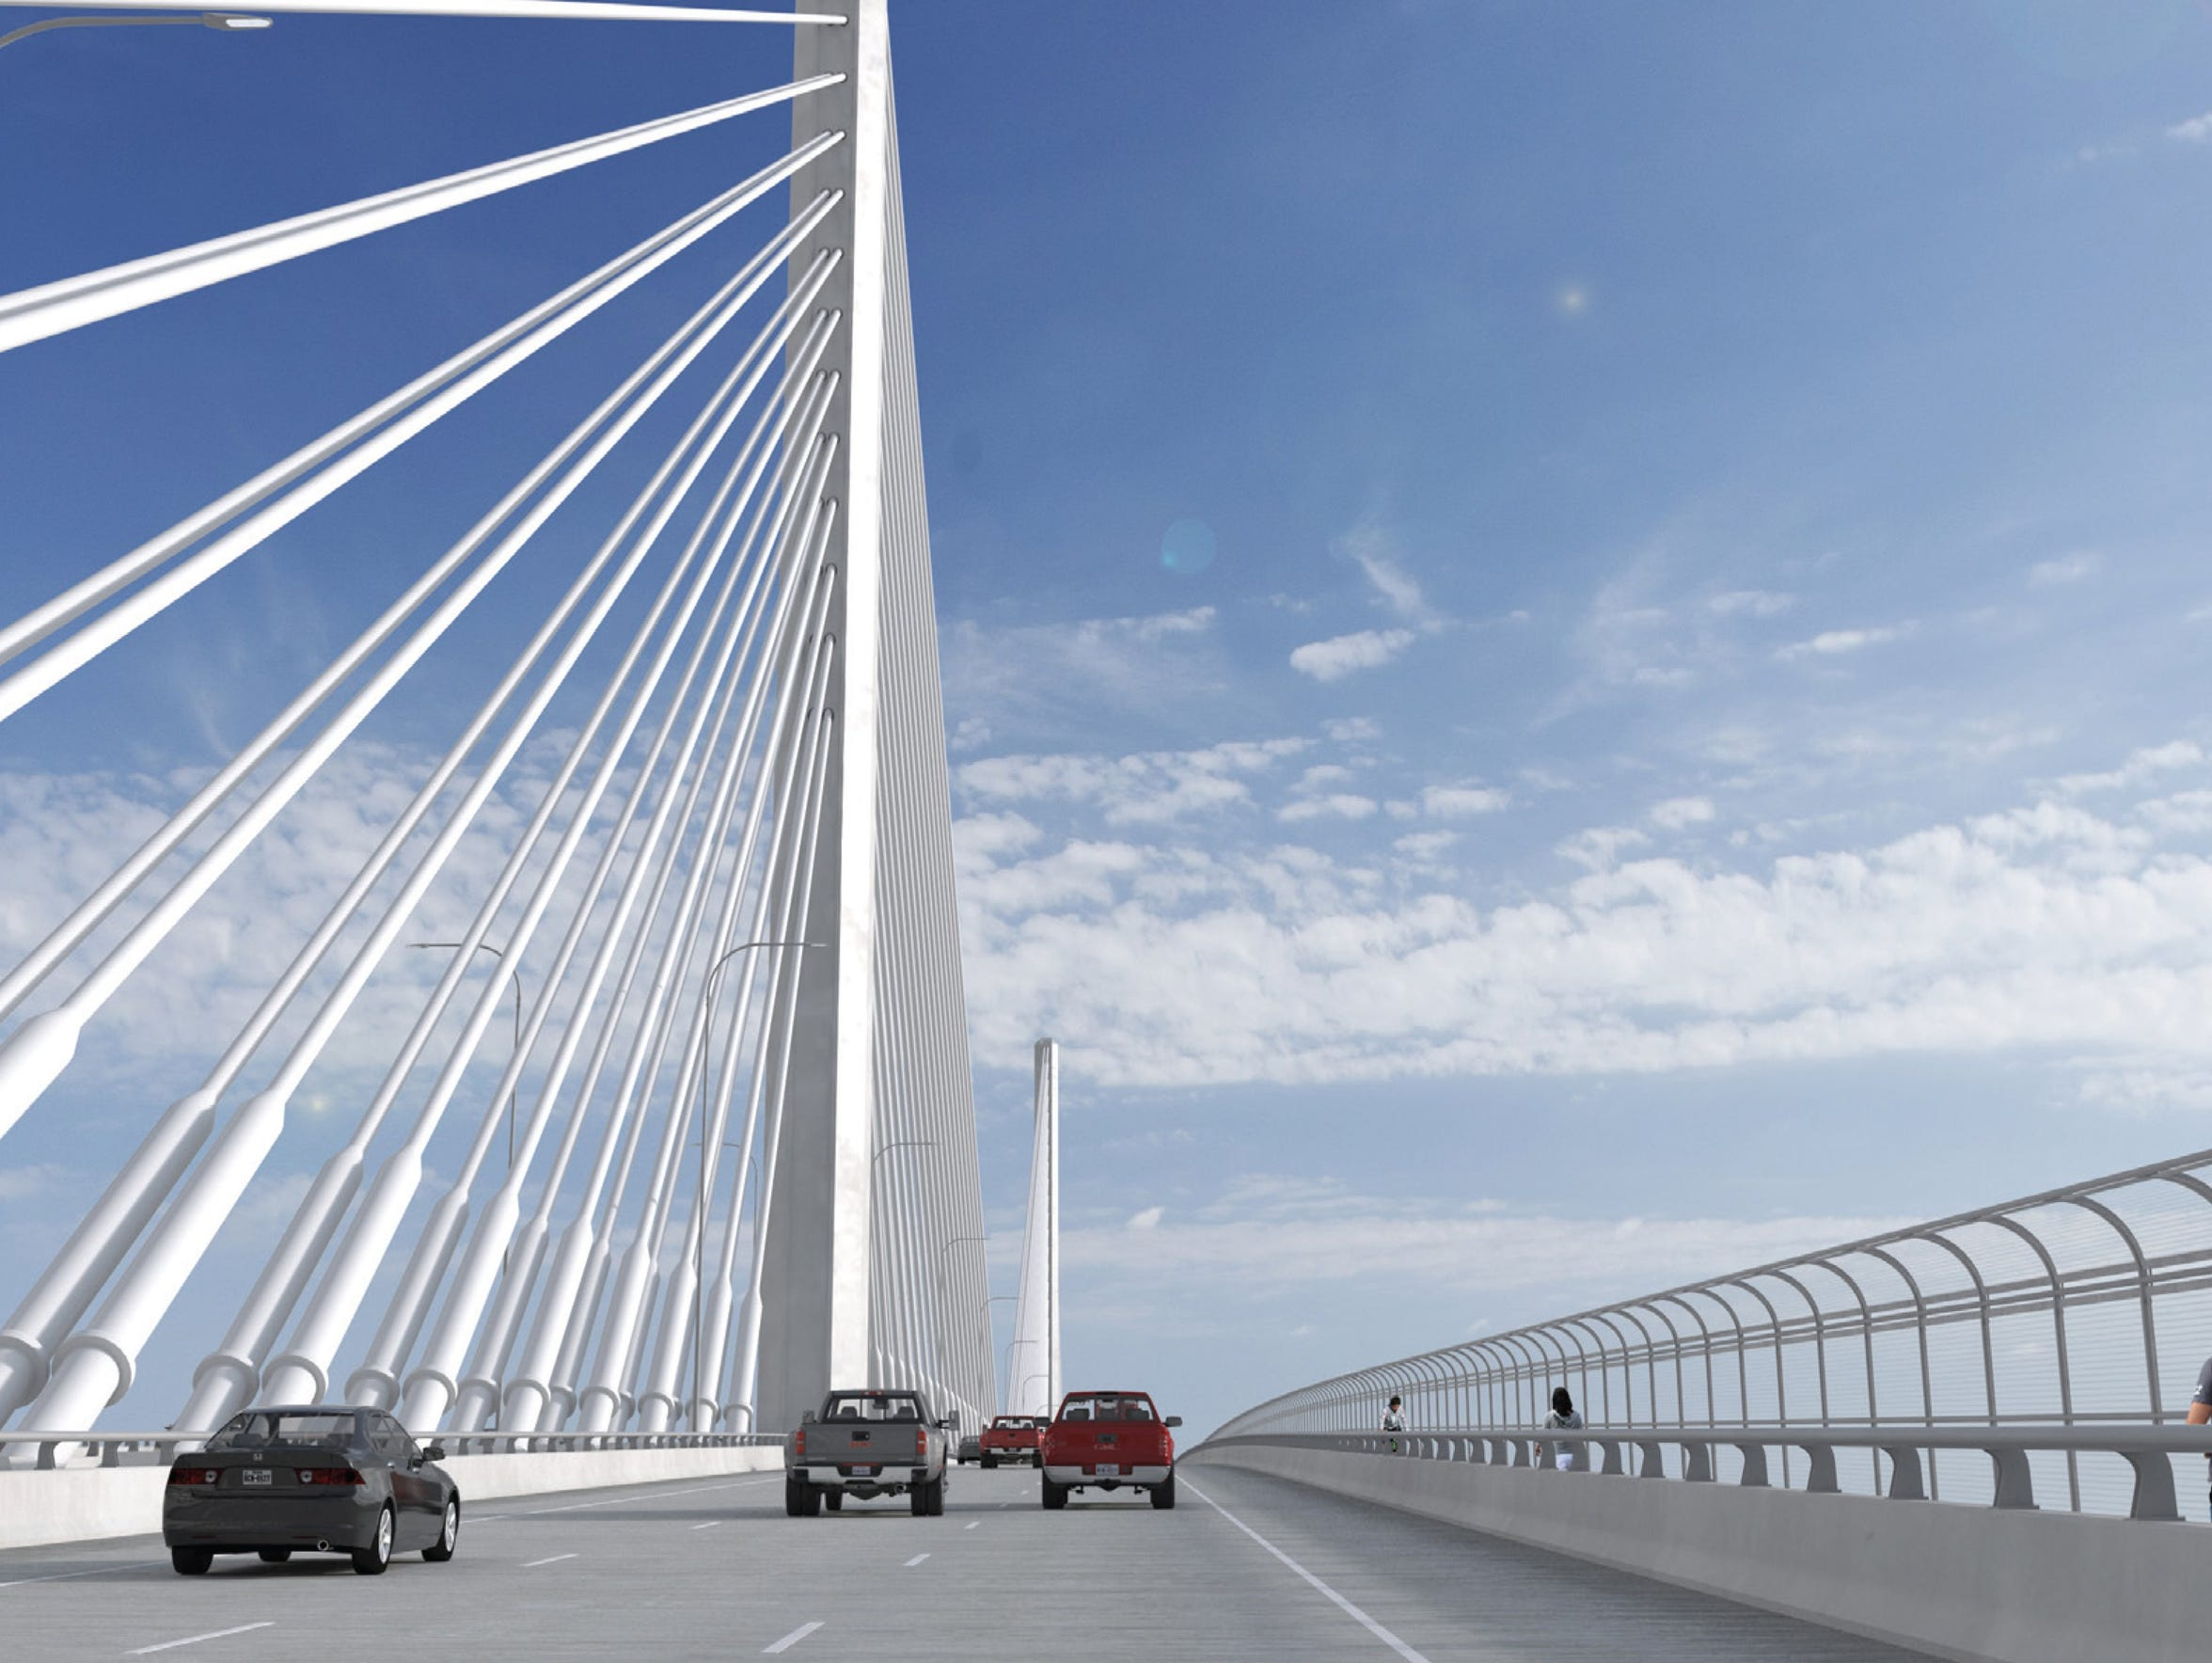 Port officials say construction of the span that will